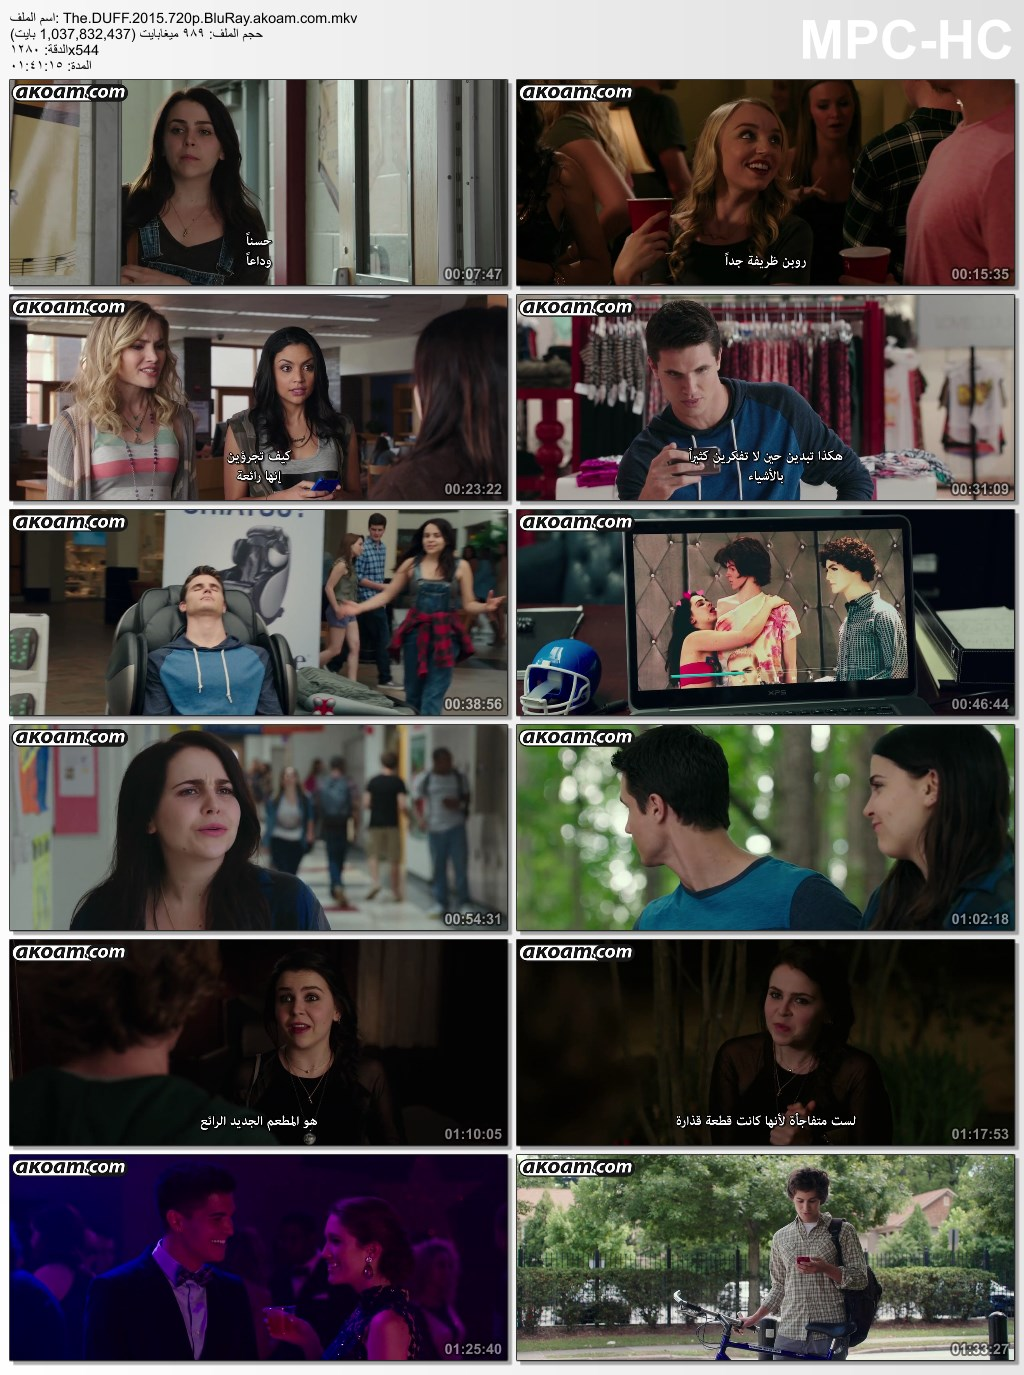 The Duff,داف,The Duff  2015,الكوميديا,Mae Whitman,Bella Thorne